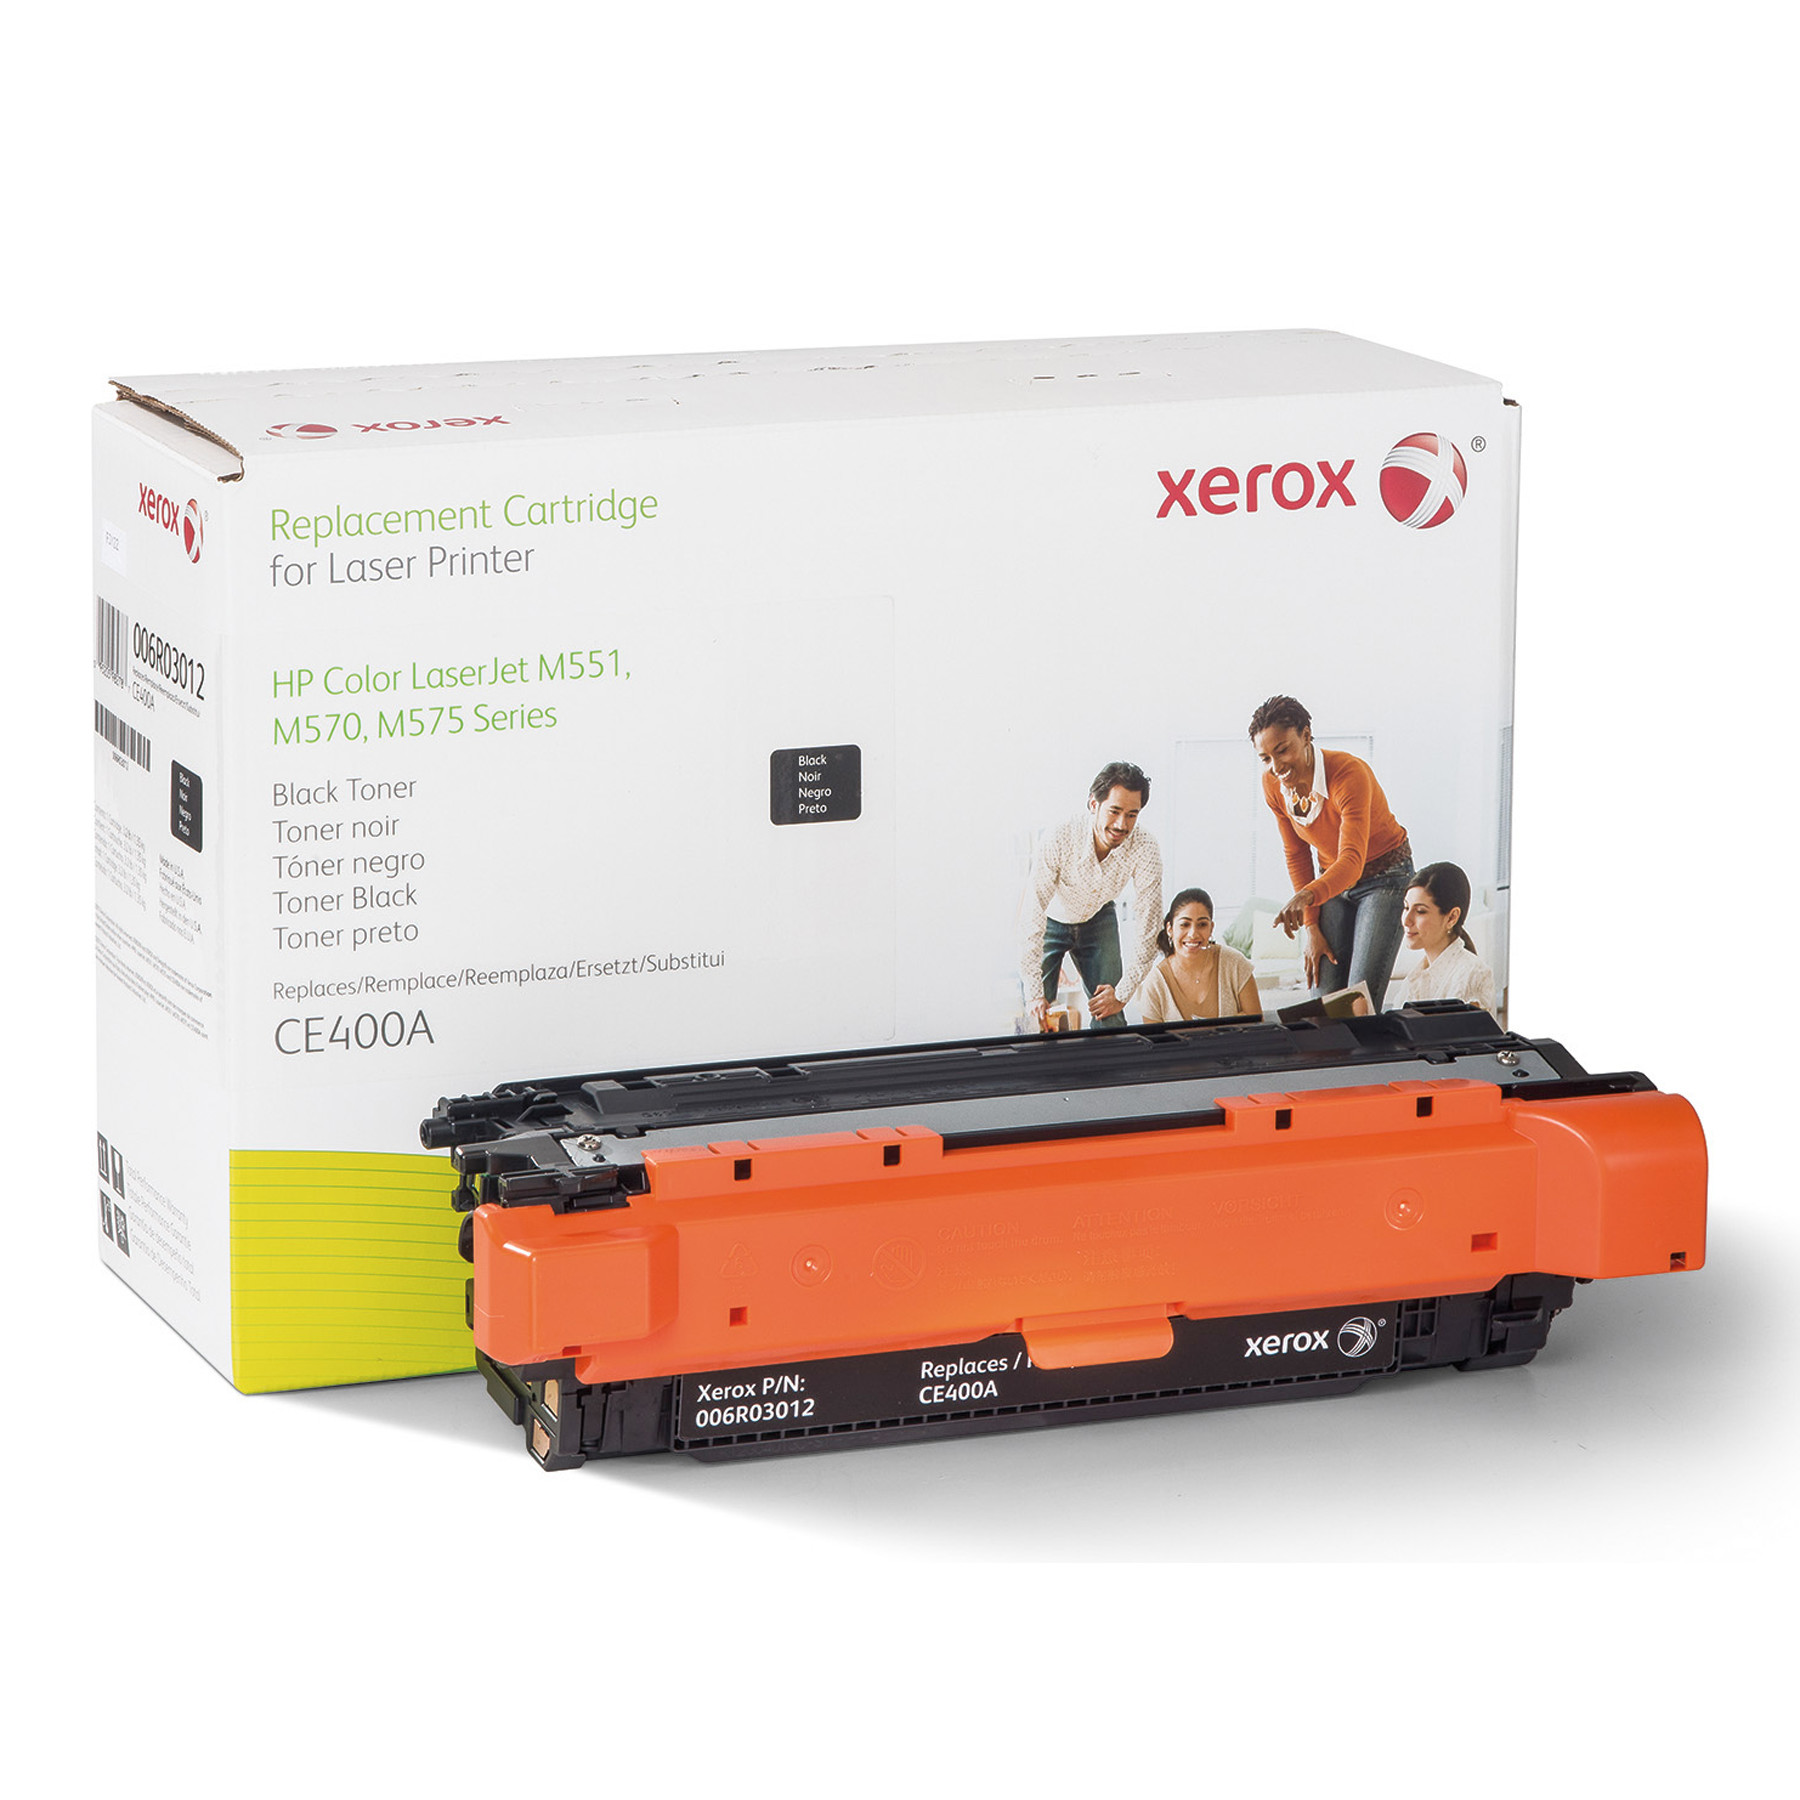 Xerox 006R03012 Replacement Toner for CE400A (507A), Black